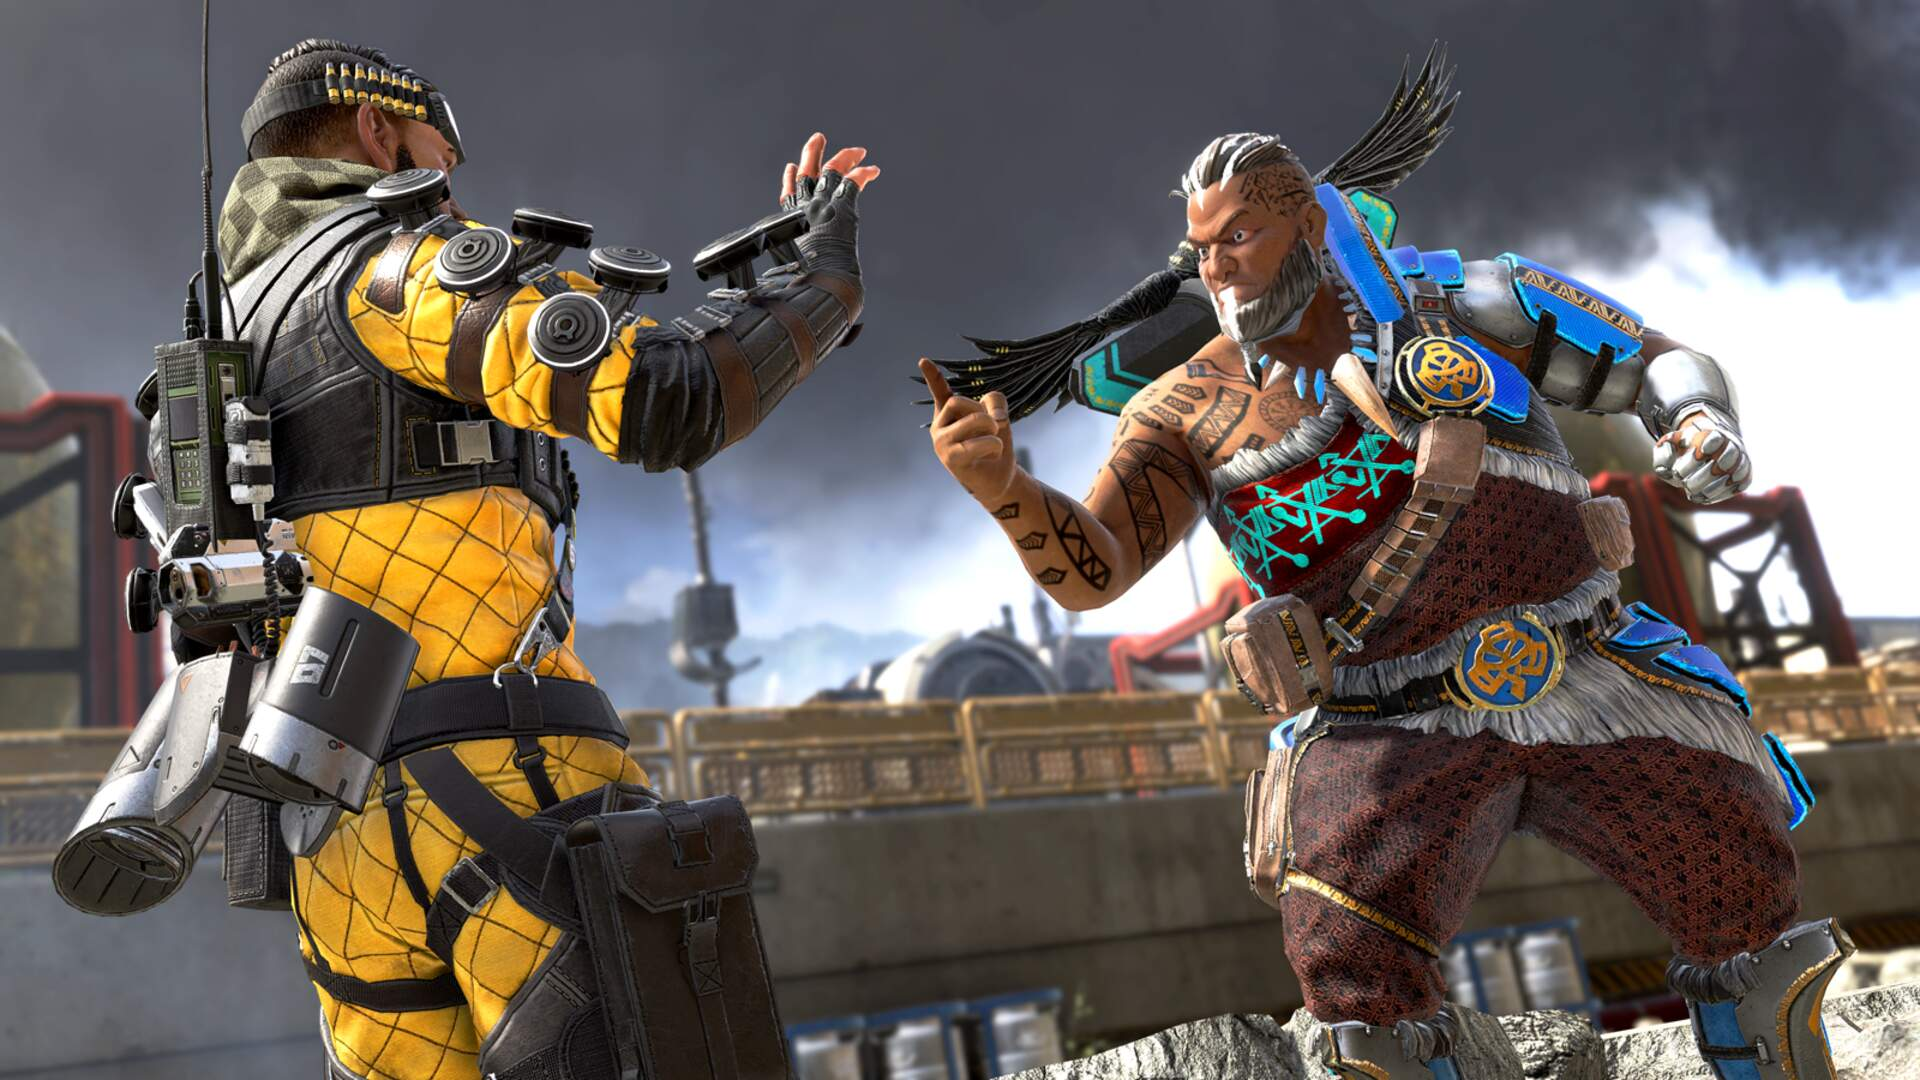 Apex Legends' Solo Mode Encourages a Very Different Style of Play